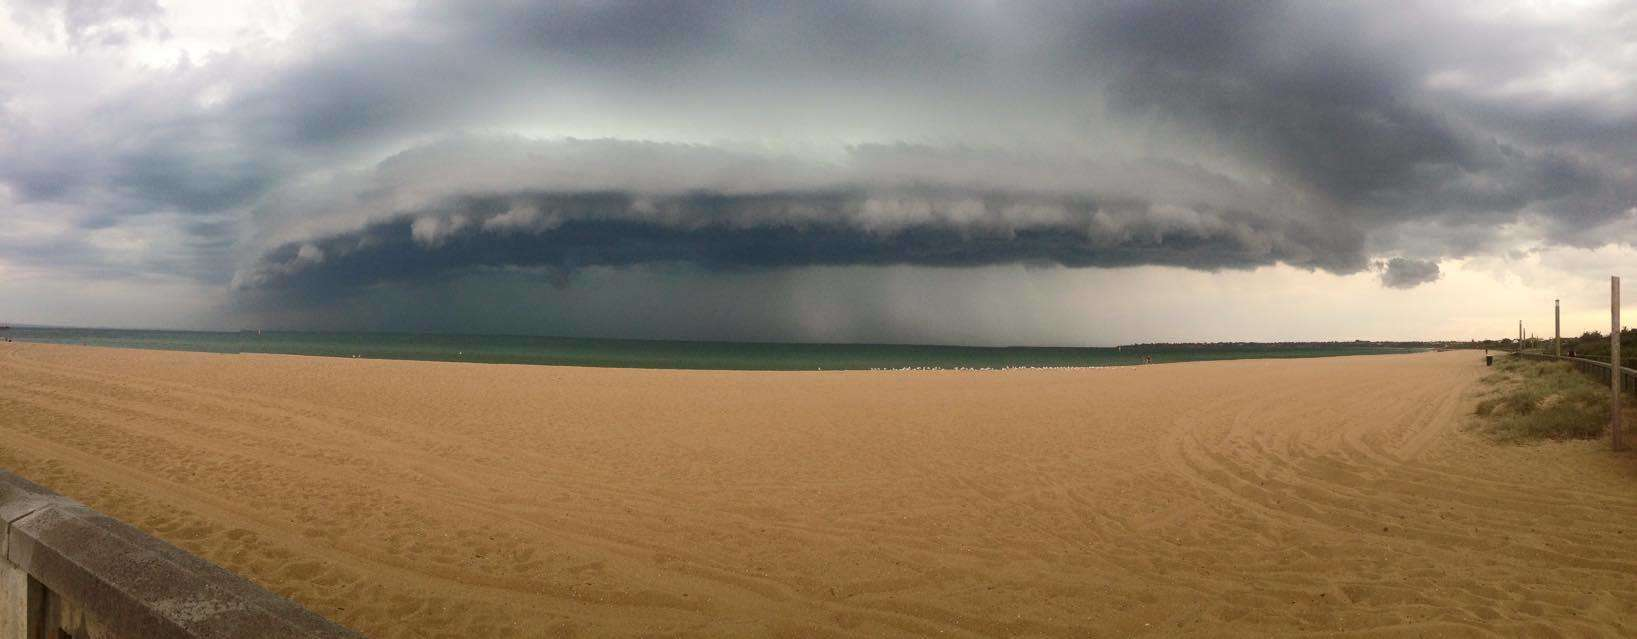 I captured this Shelf cloud at Mordiallioc, Melbourne, on Friday 13 February.